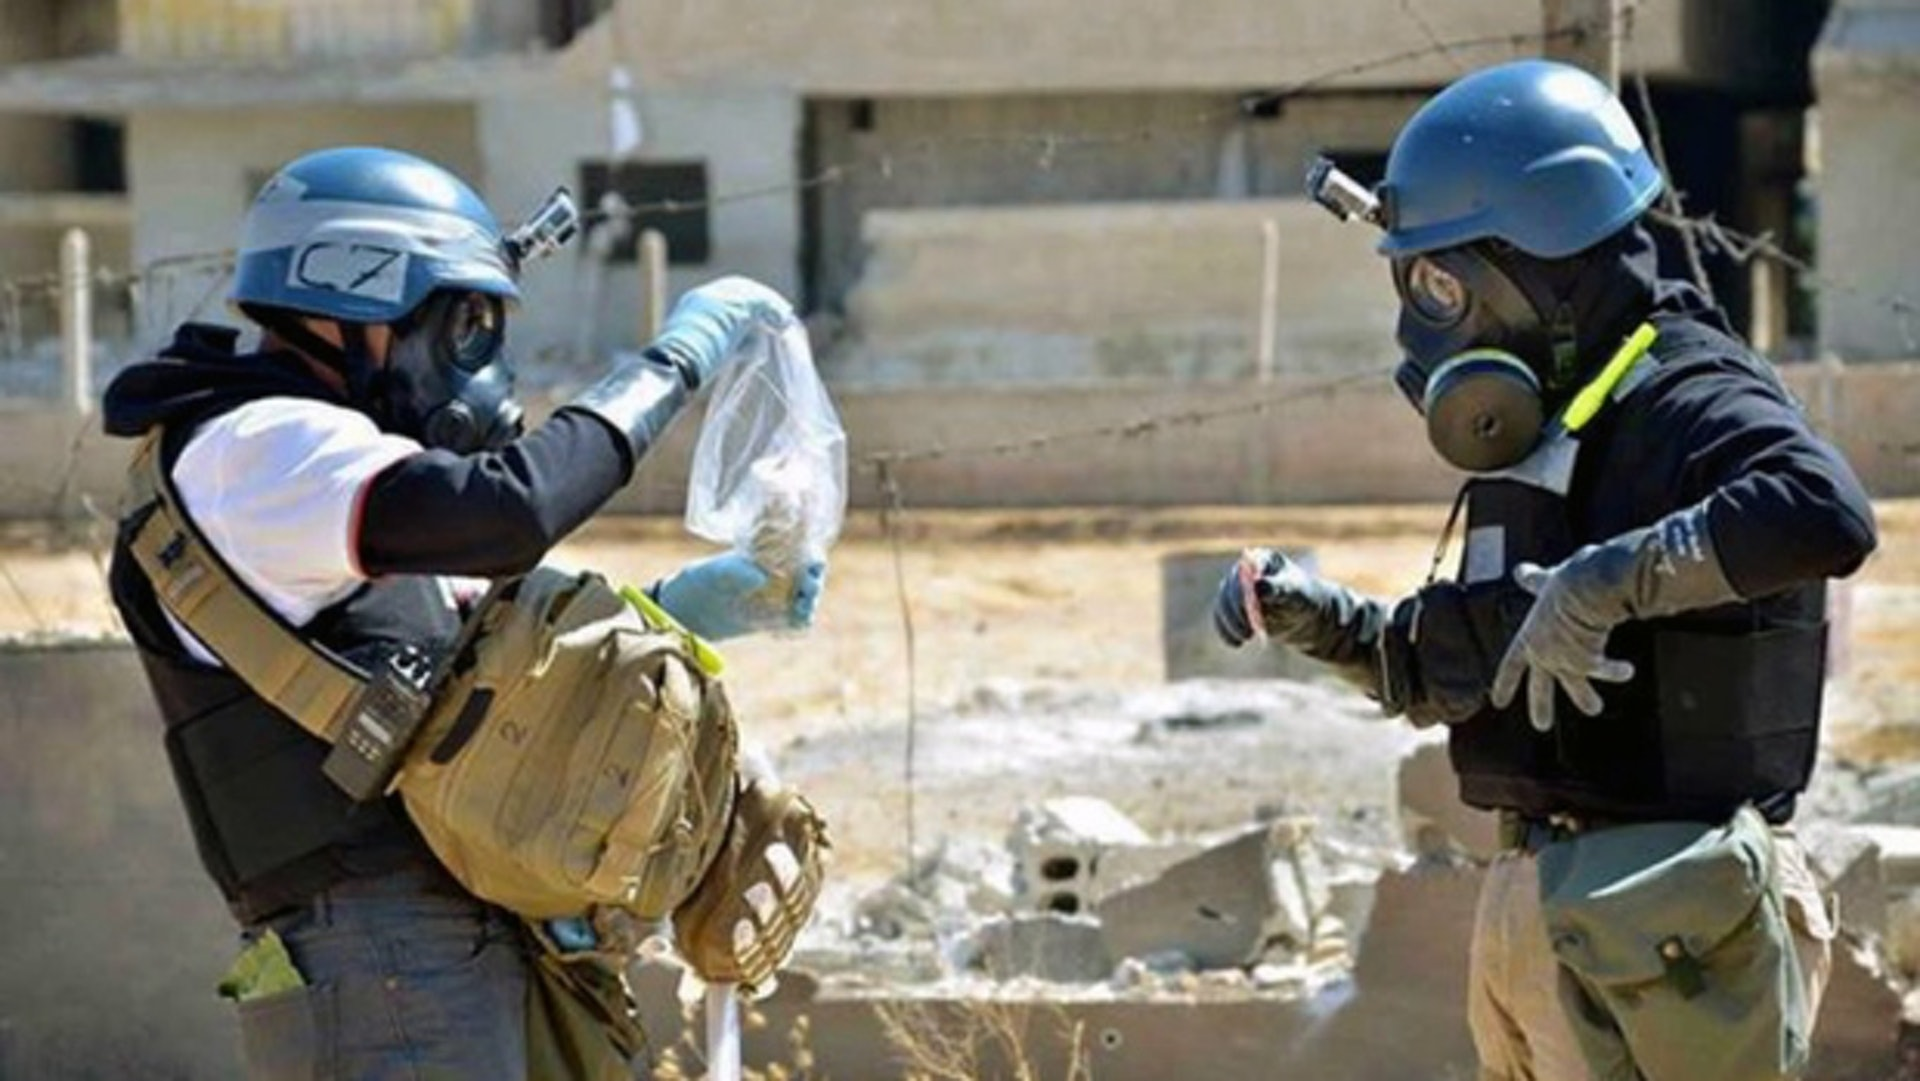 An international team checks the use of toxic gases in Hama in 2017 / Associated Press